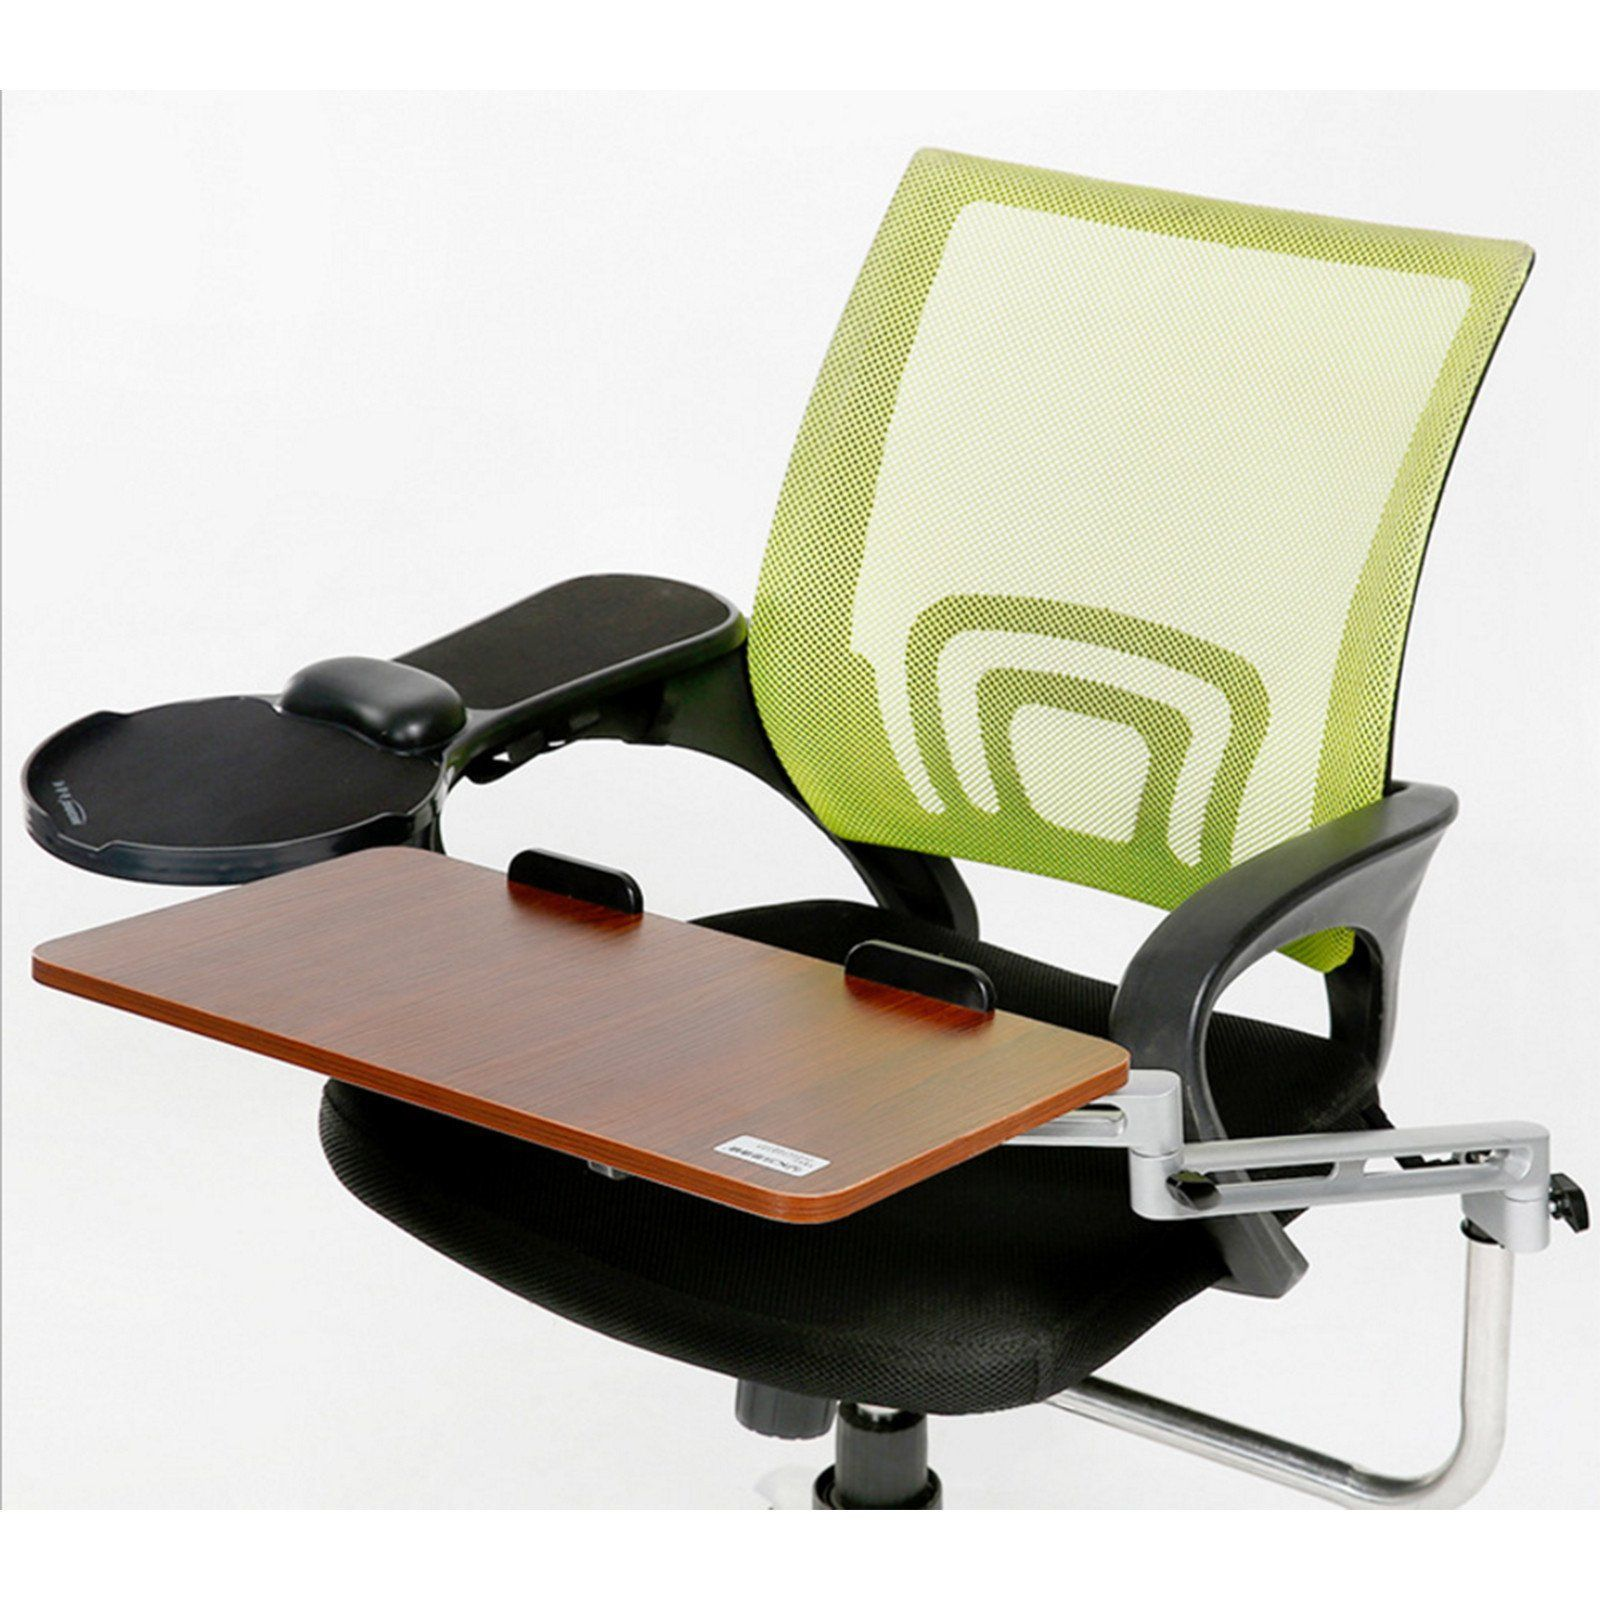 Chair Arm Table Attachment Crate And Barrel Ergonomic Mount Laptop Keyboard Mouse Tray System